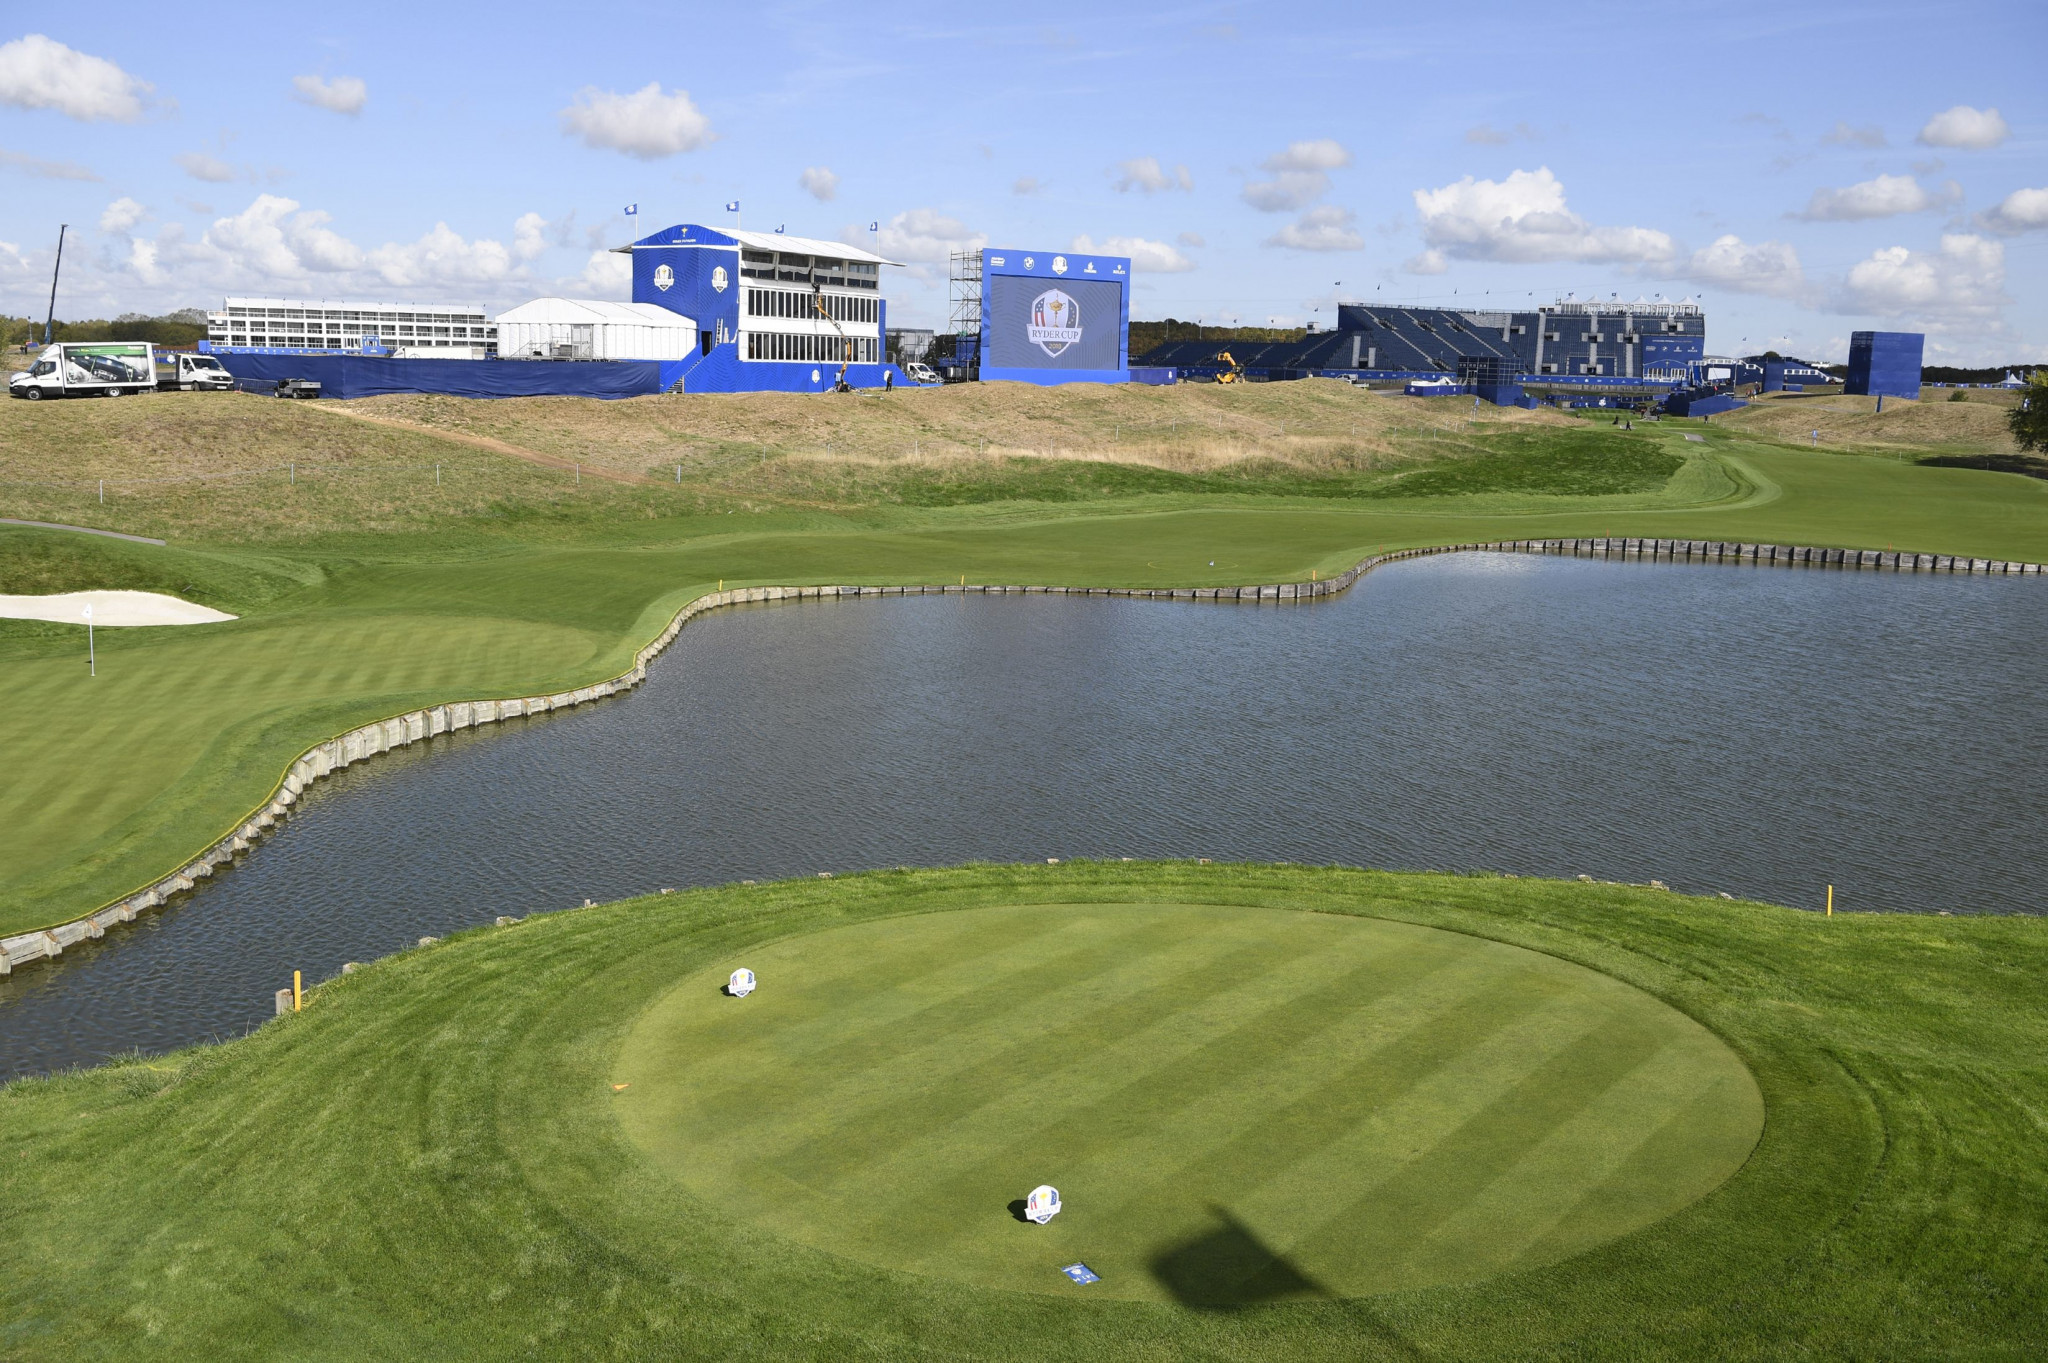 Paris 2024 claim Ryder Cup will help optimise plans for Olympic Games golf tournament